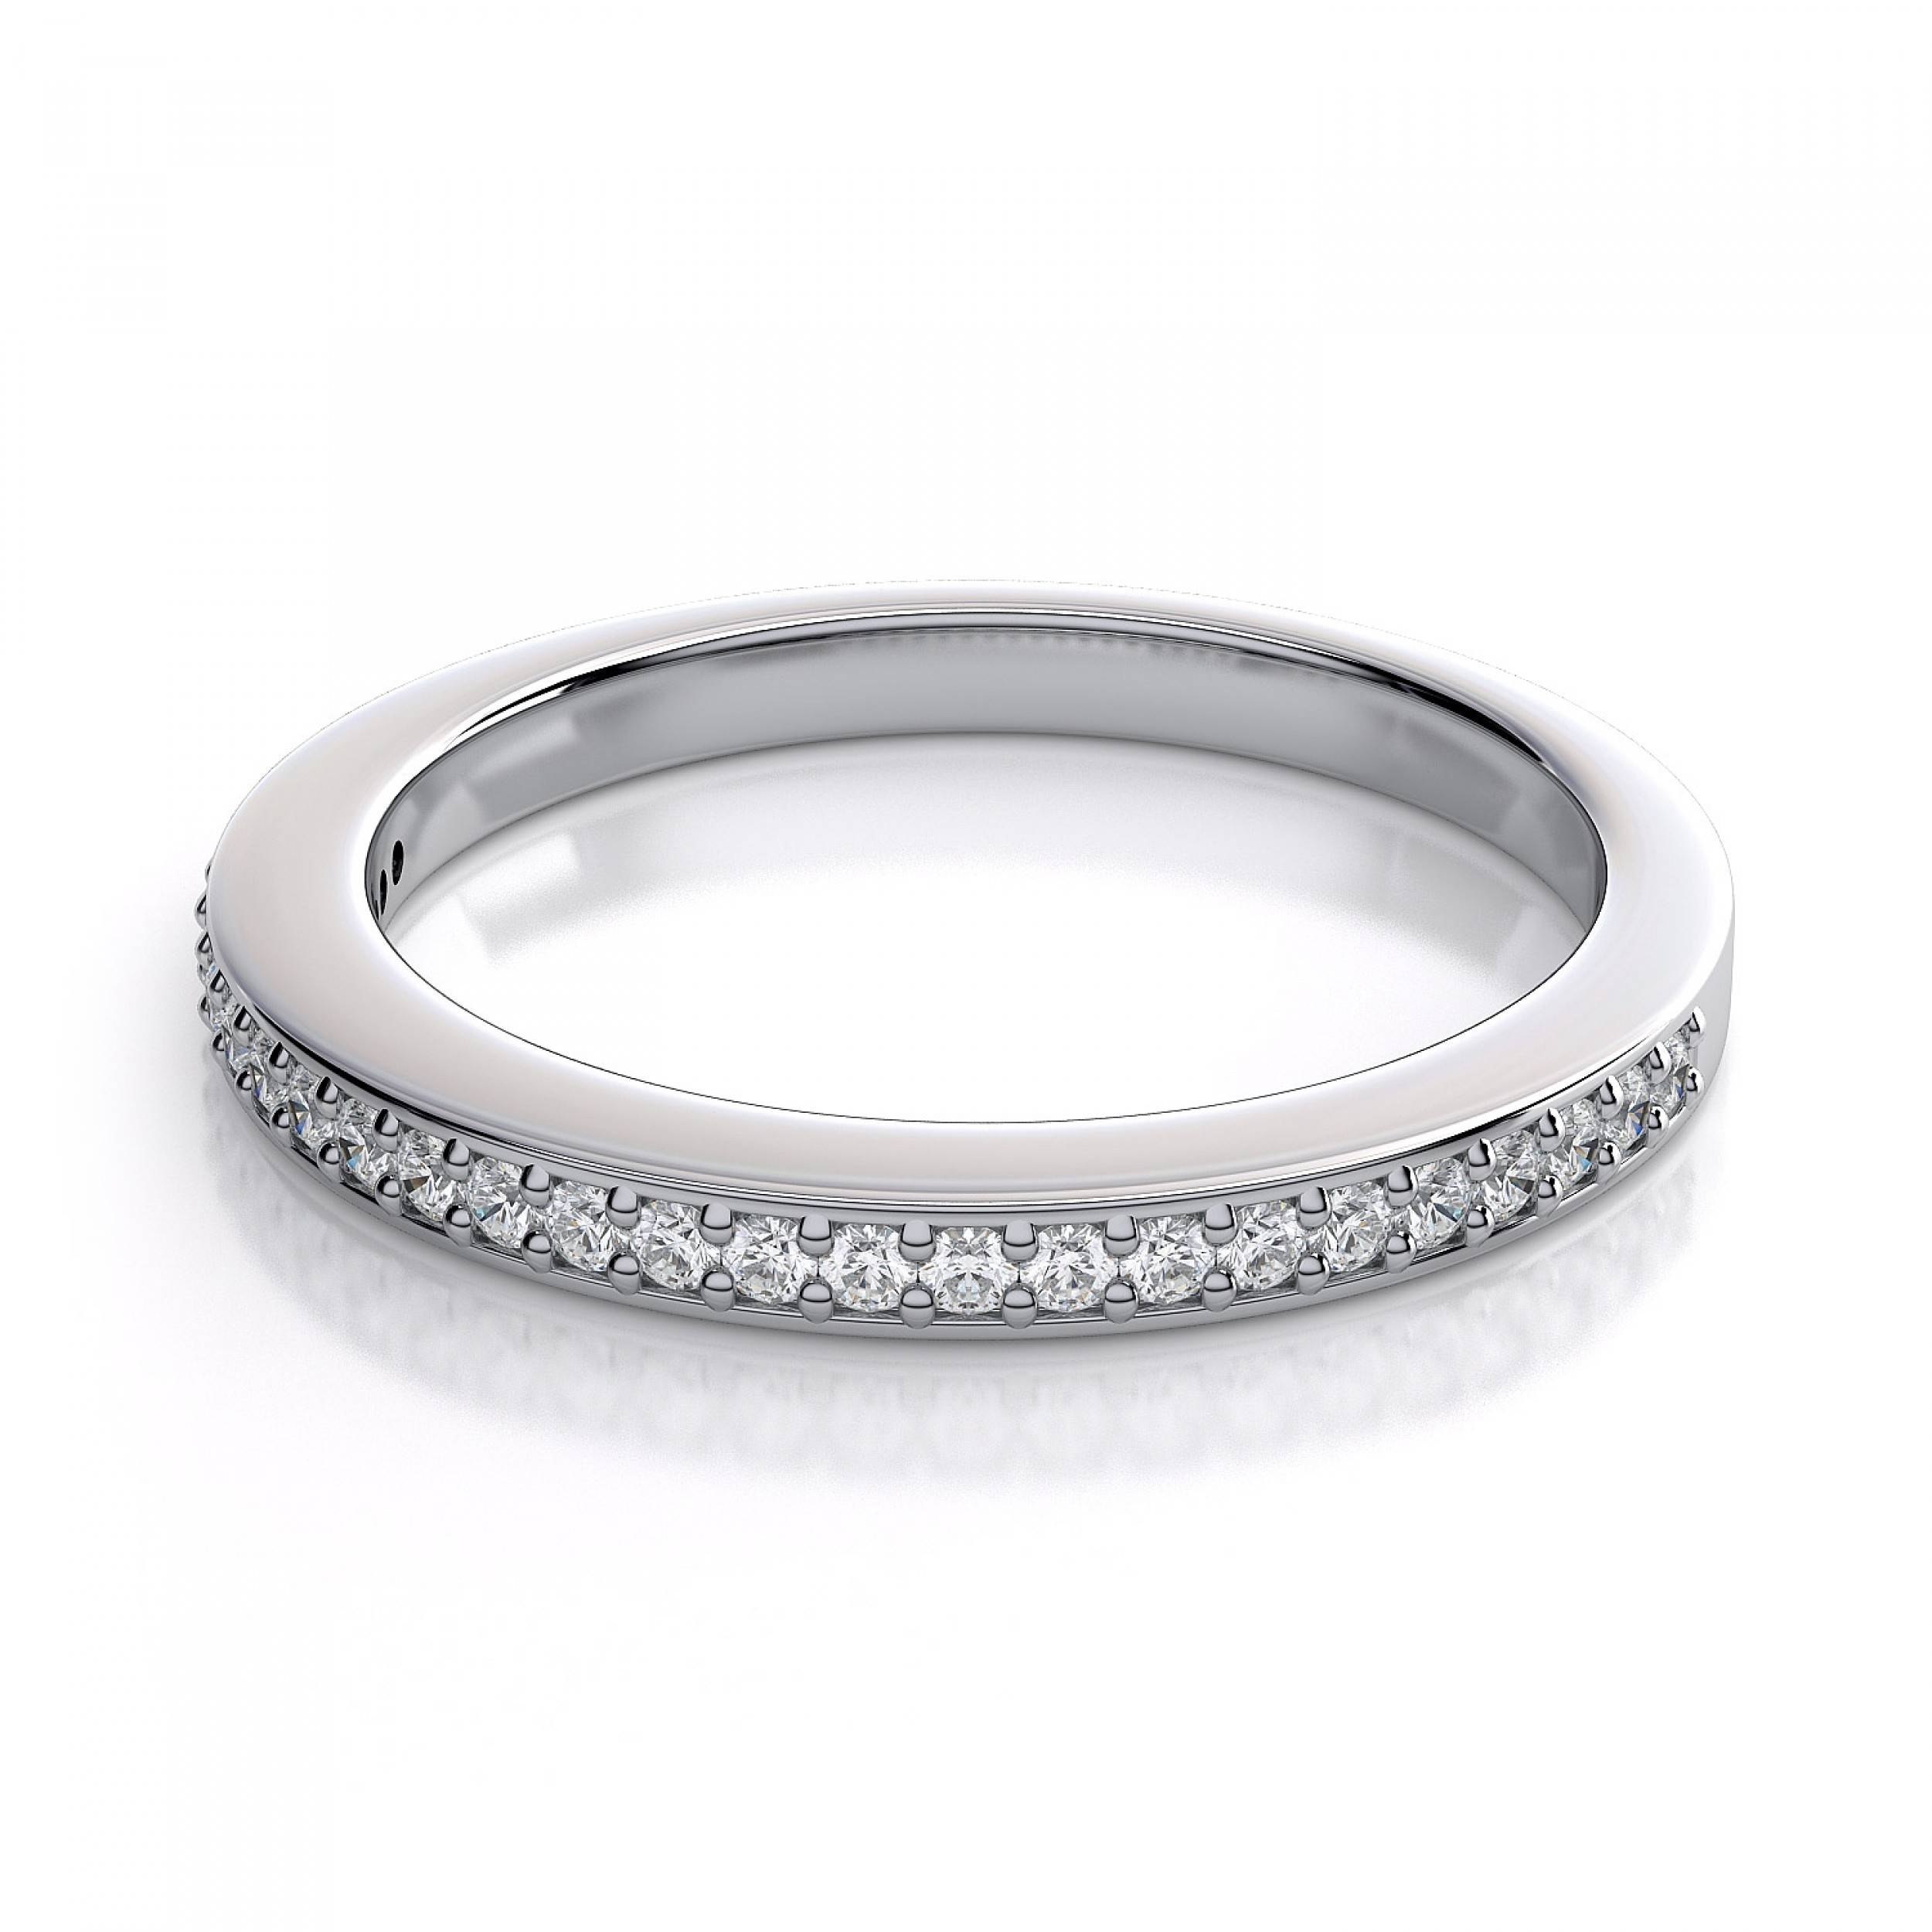 this crafted aeravida plain products hill sunflower details artsy silver wrap ring motif features fine hand rings stylish tribe central with a pr pure design featuring carved karen thai